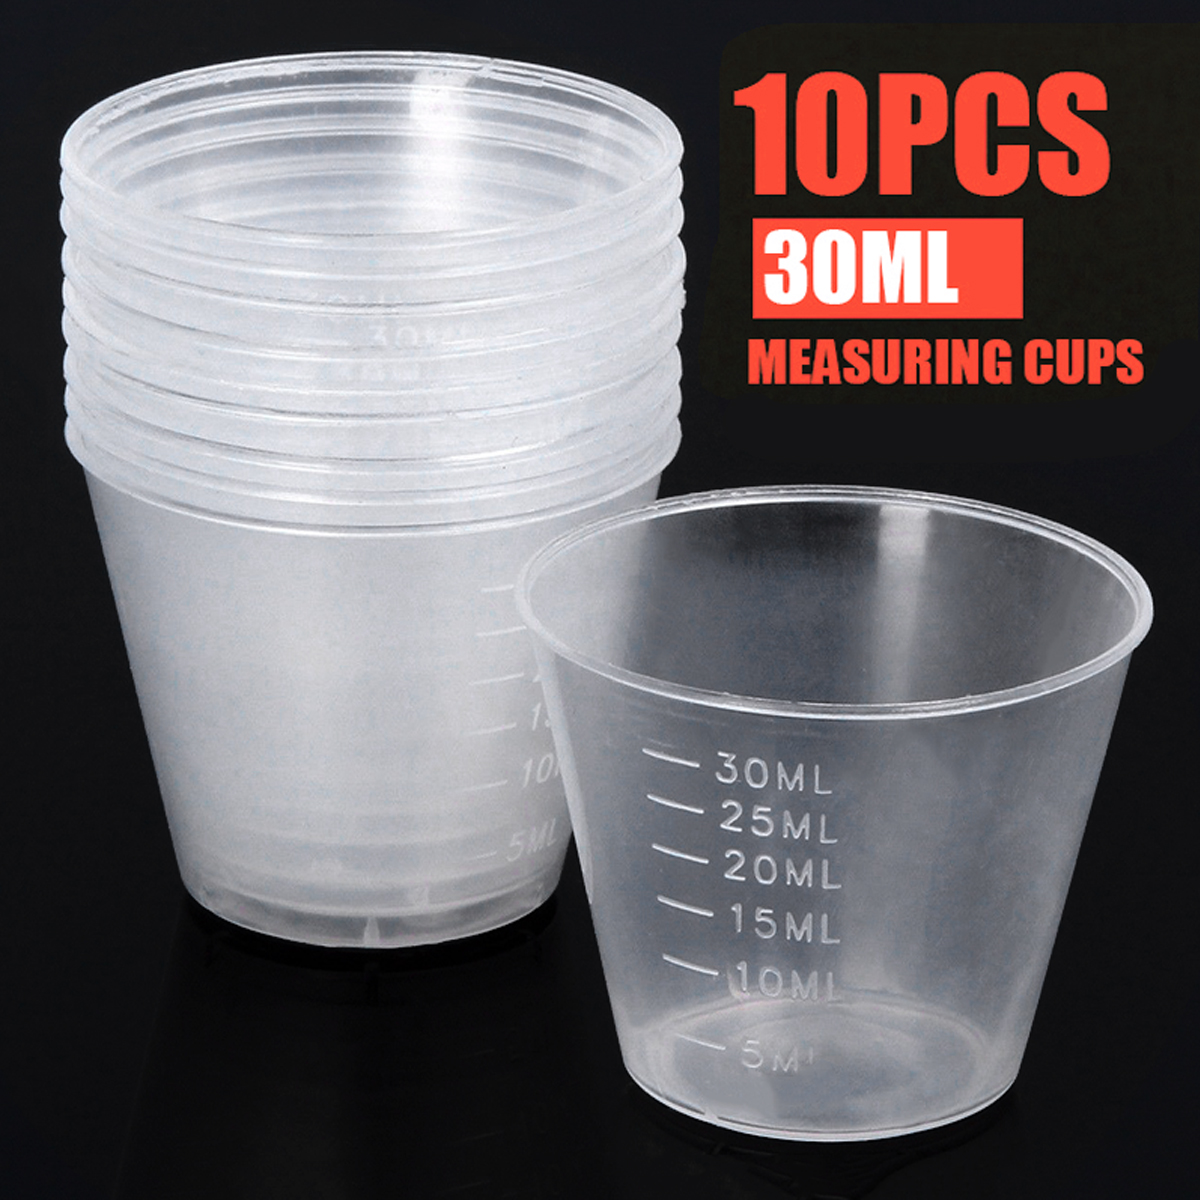 10pcs 30ml Plastic Clear Measuring Cups Disposable Liquid Container Medicine Cups Kitchen Tool